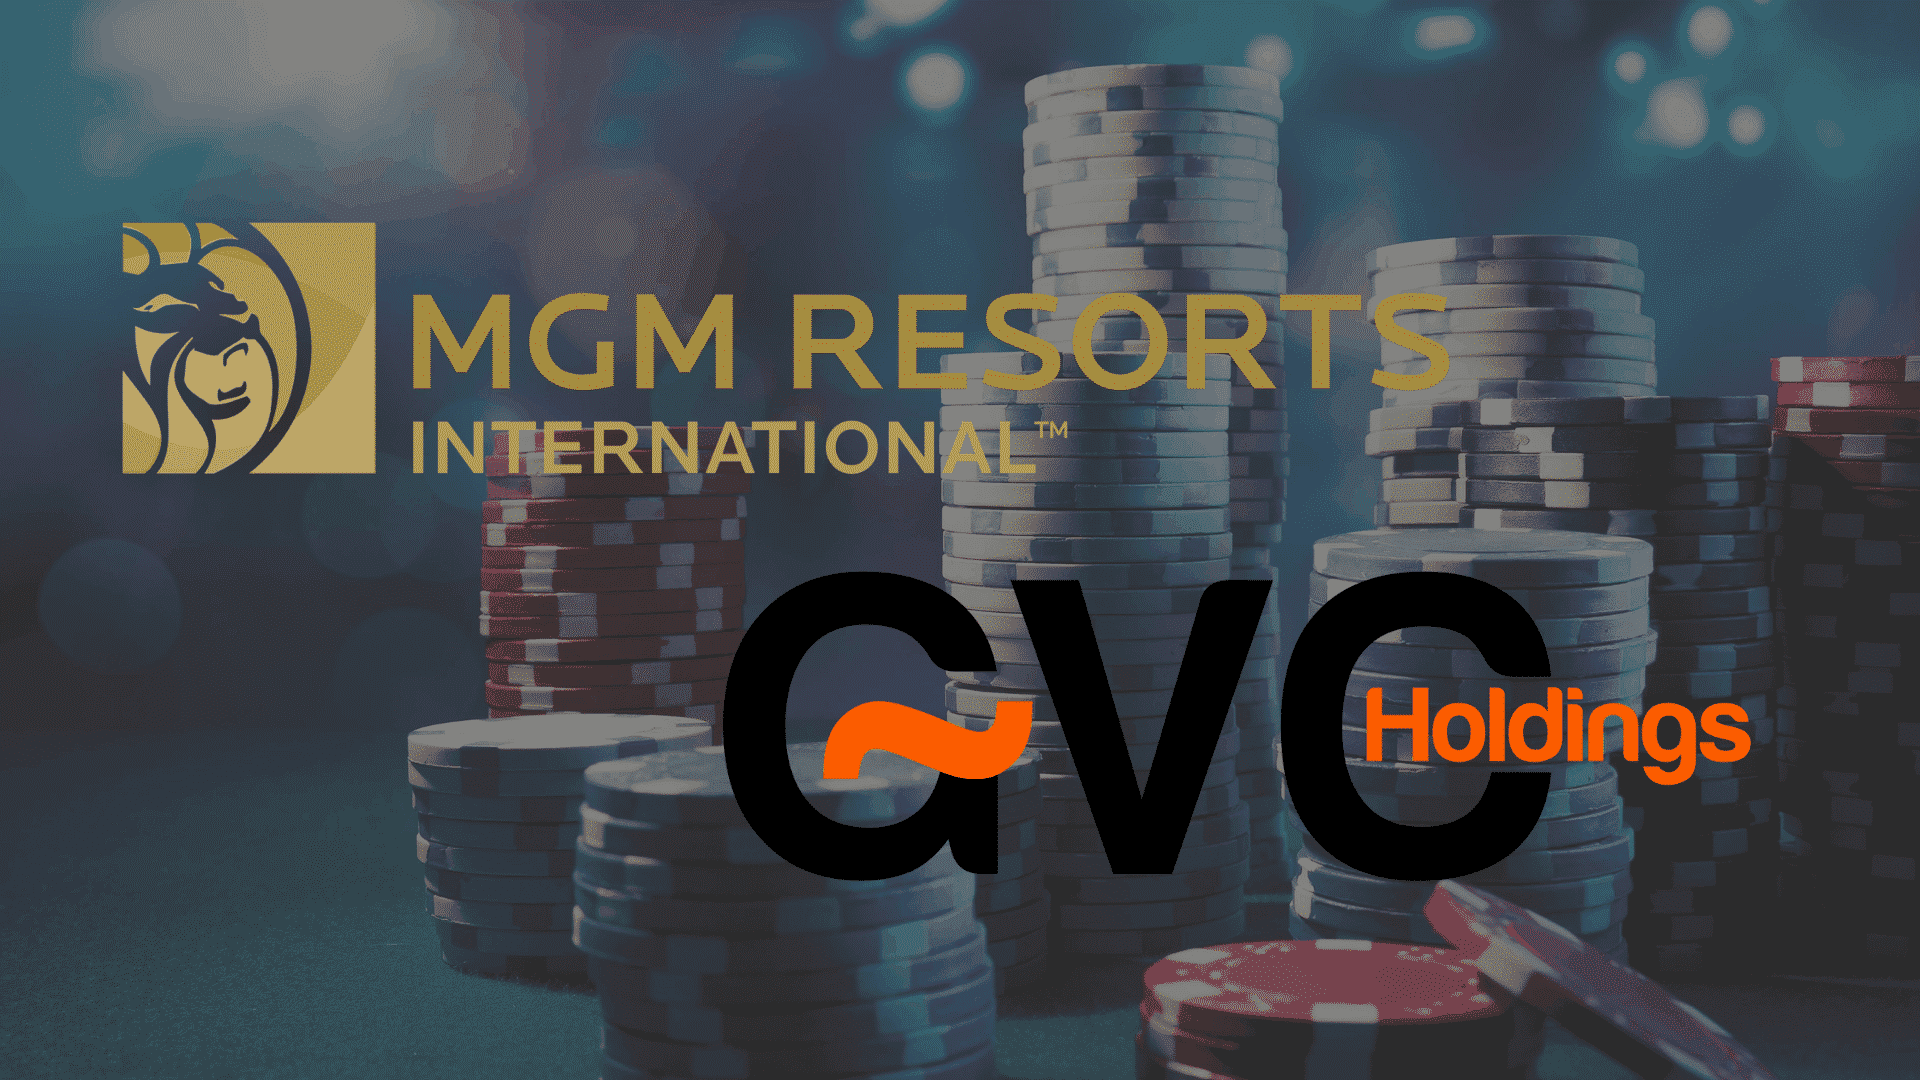 Photo of Roar Digital, LLC by MGM and GVC Launches BetMGM Online Gaming App in New Jersey